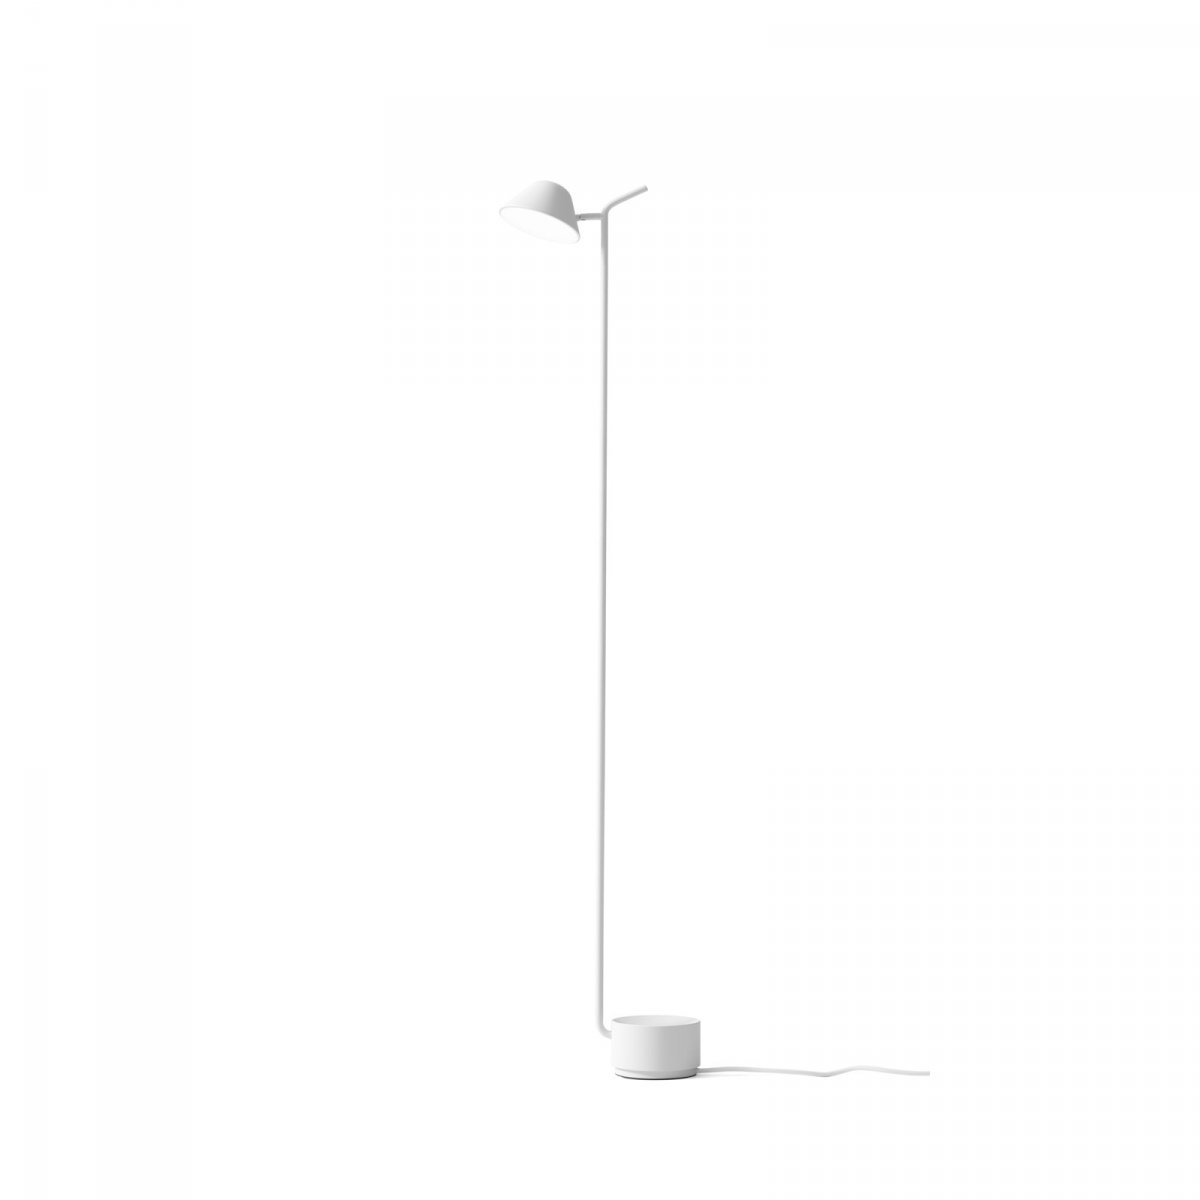 Peek Floor Lamp, white.